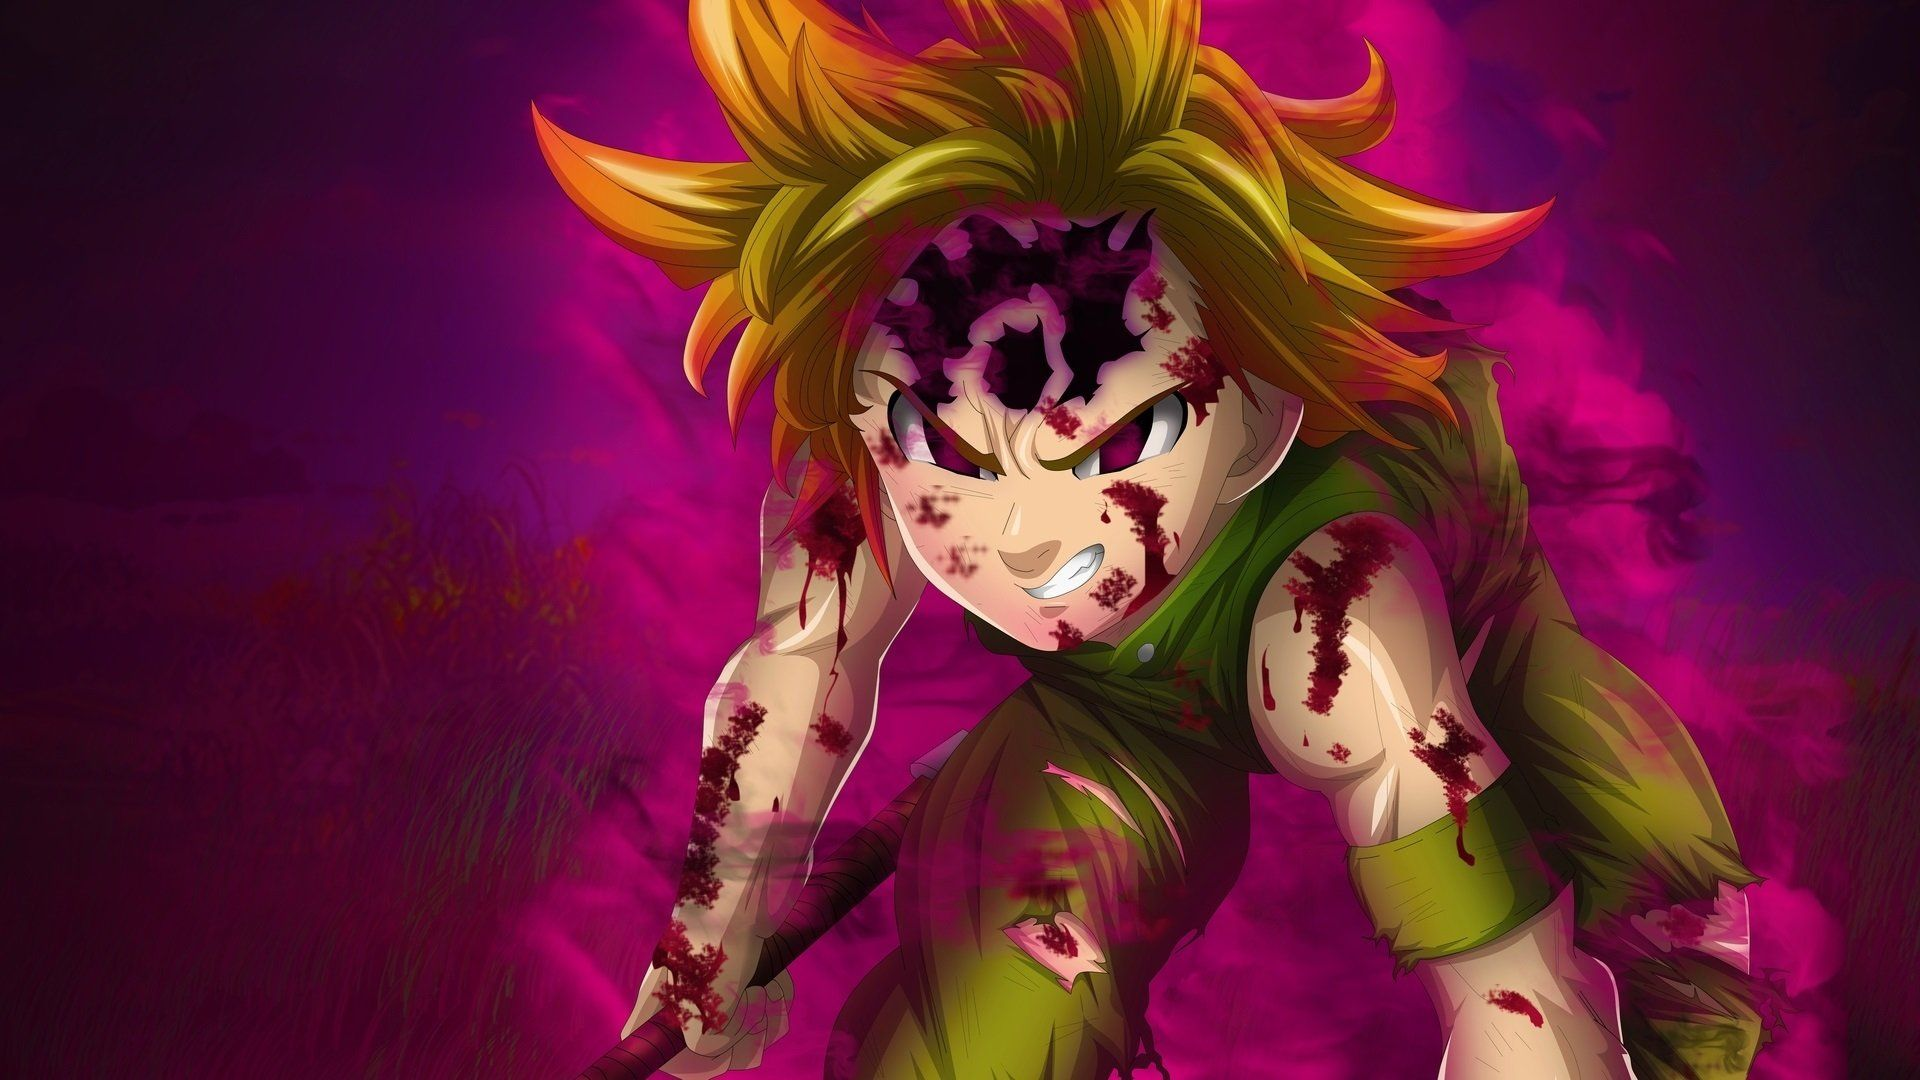 King Seven Deadly Sins Wallpapers Posted By Ethan Tremblay